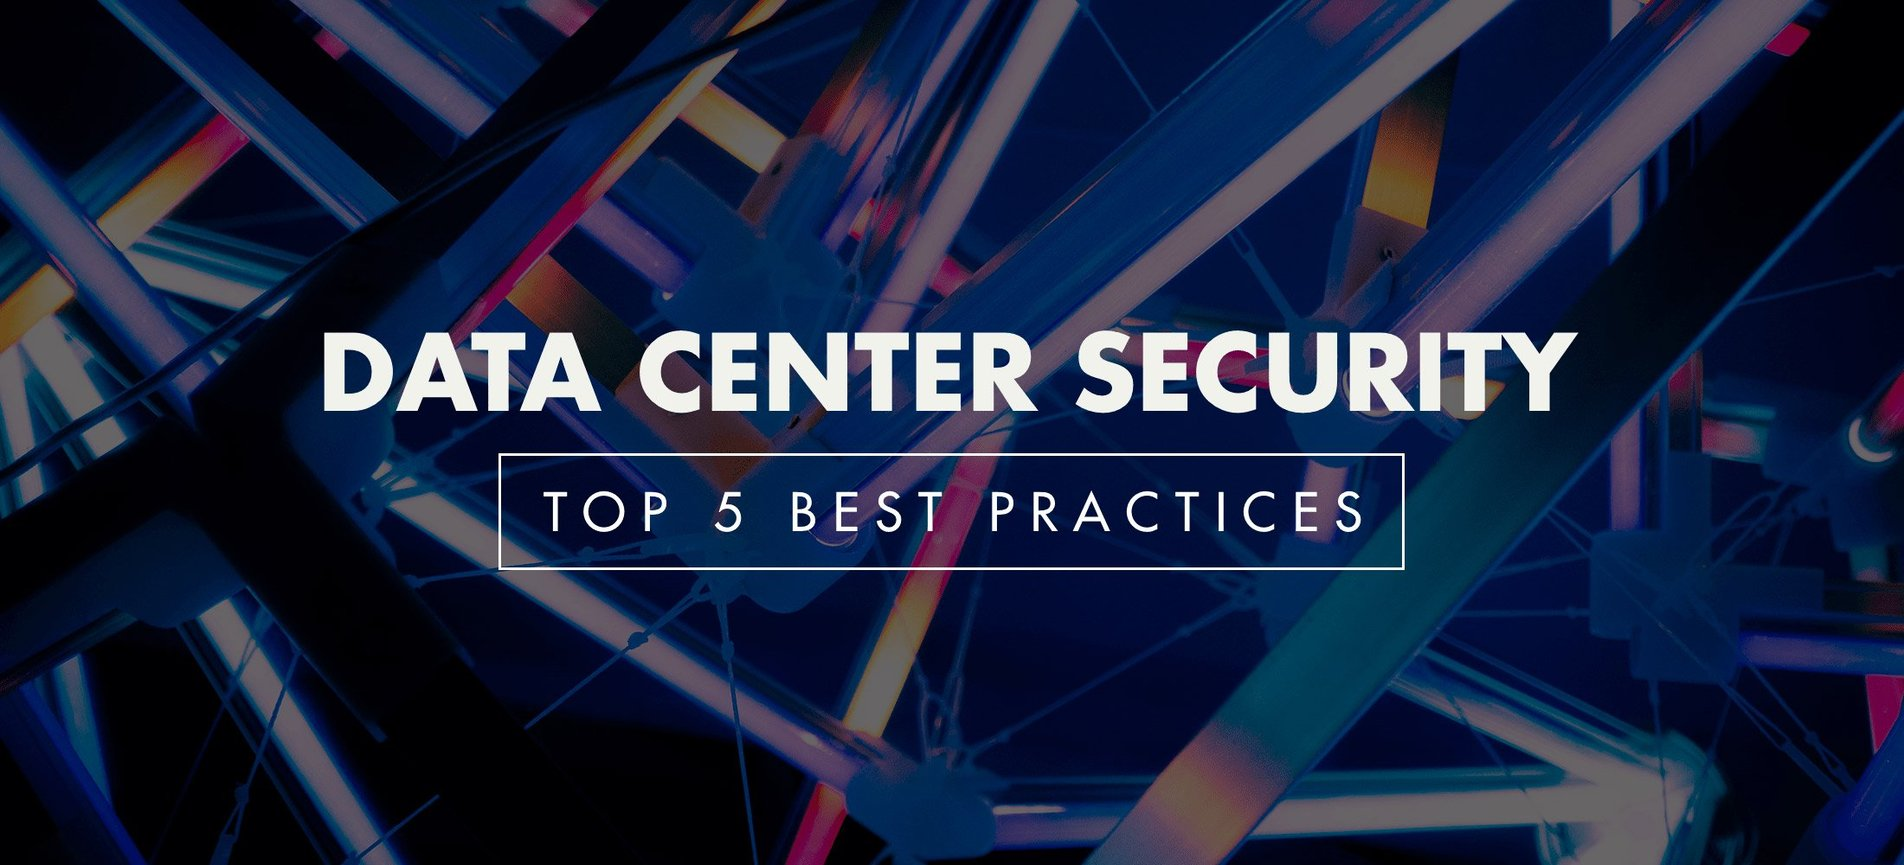 What is Data Center Security? Top 5 Best Practices.